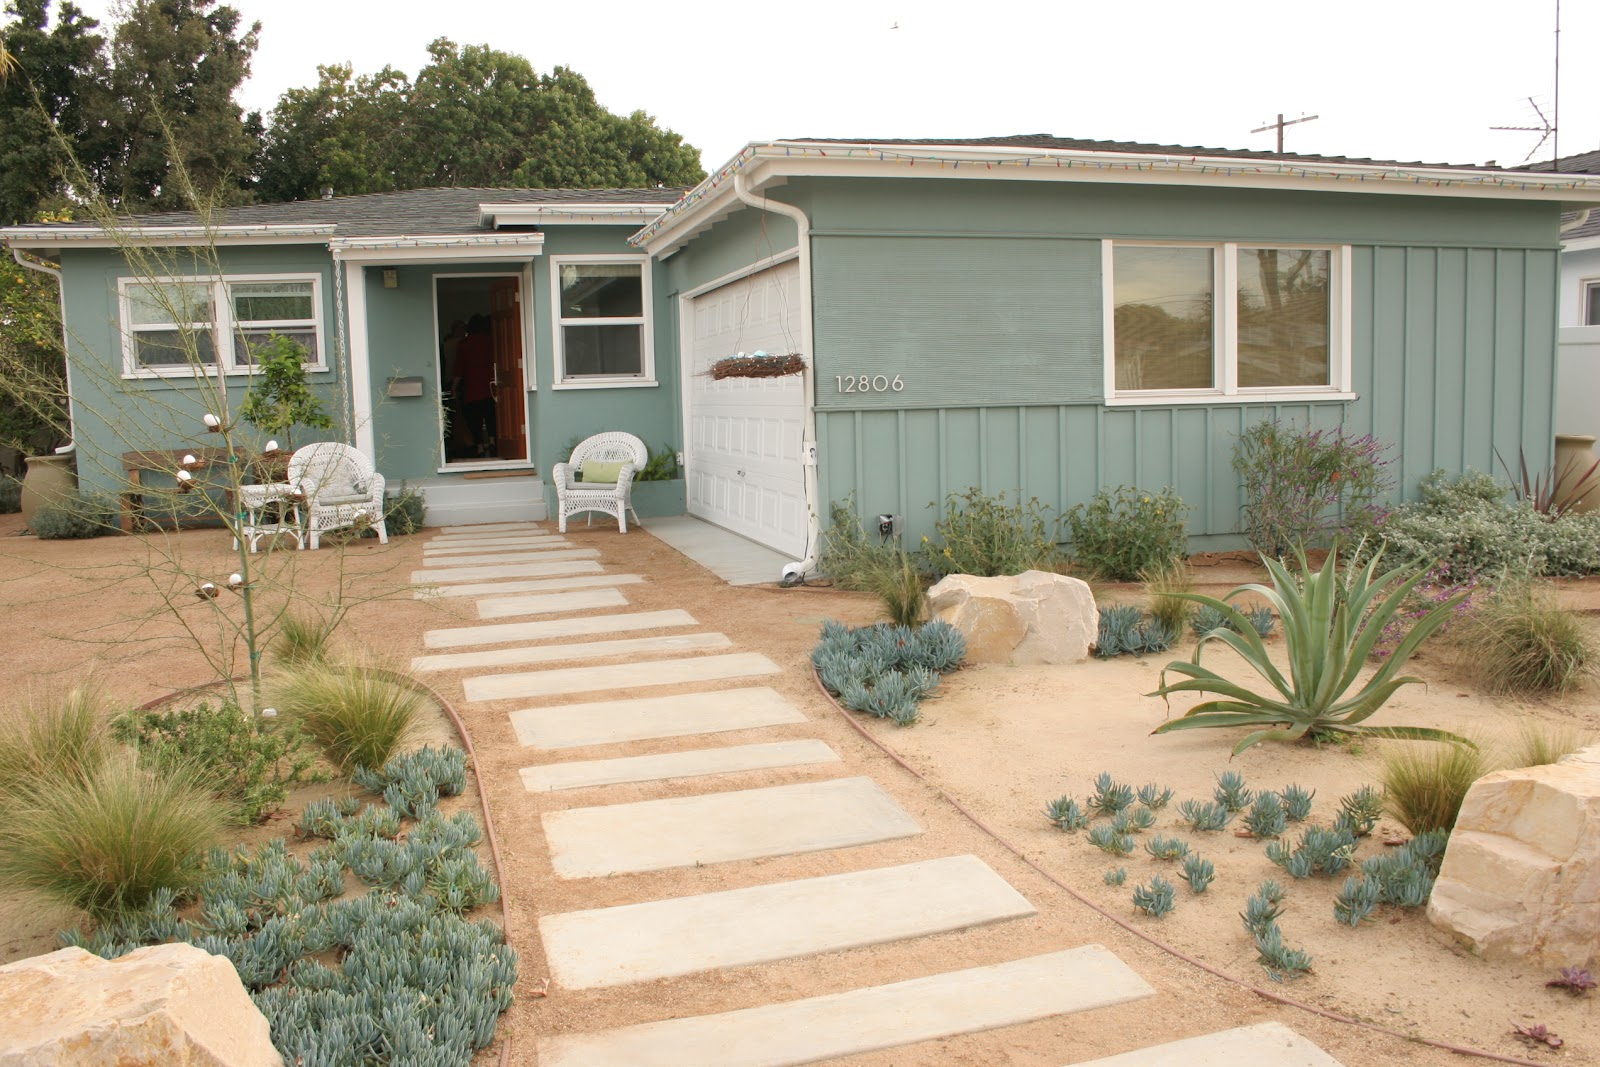 2018 Mar Vista Green Garden Showcase: 12806 Stanwood Drive on Decomposed Granite Backyard Ideas id=36724